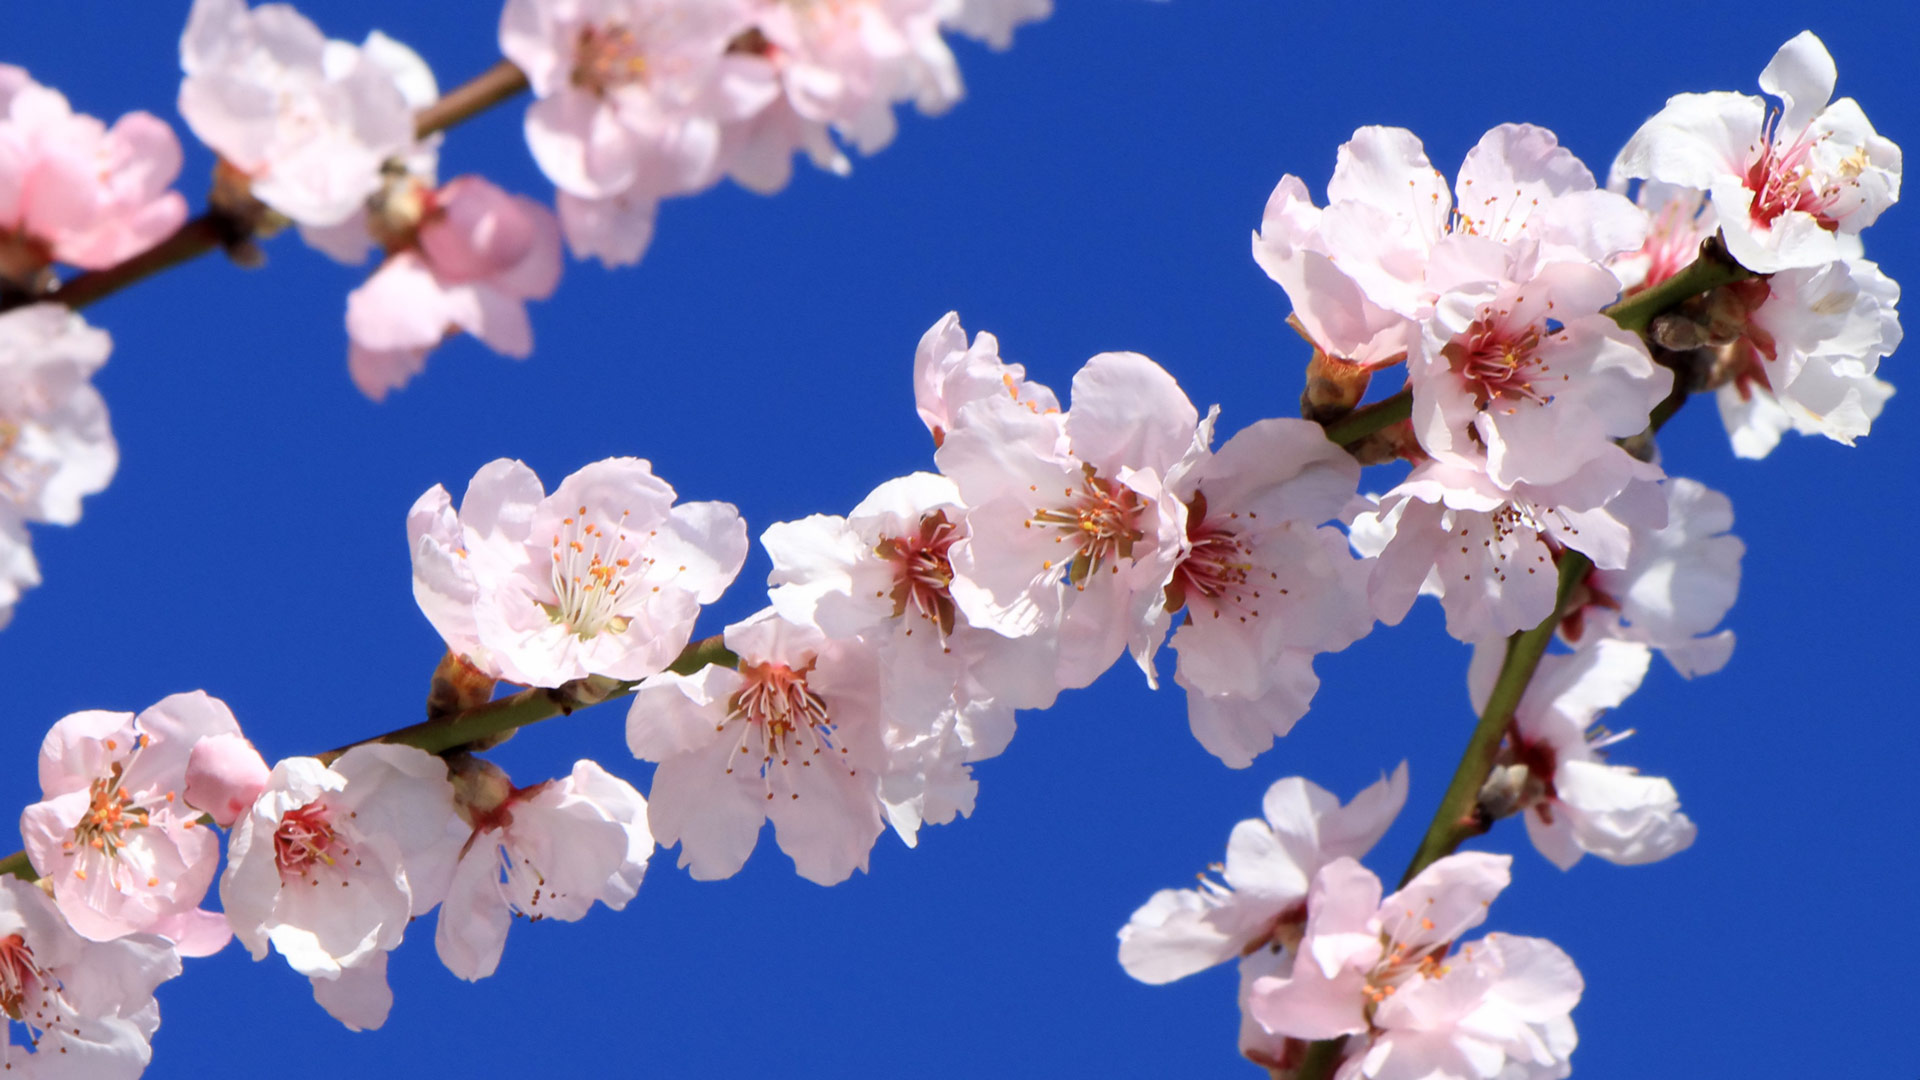 Spring almond tree flowers in deep blue background